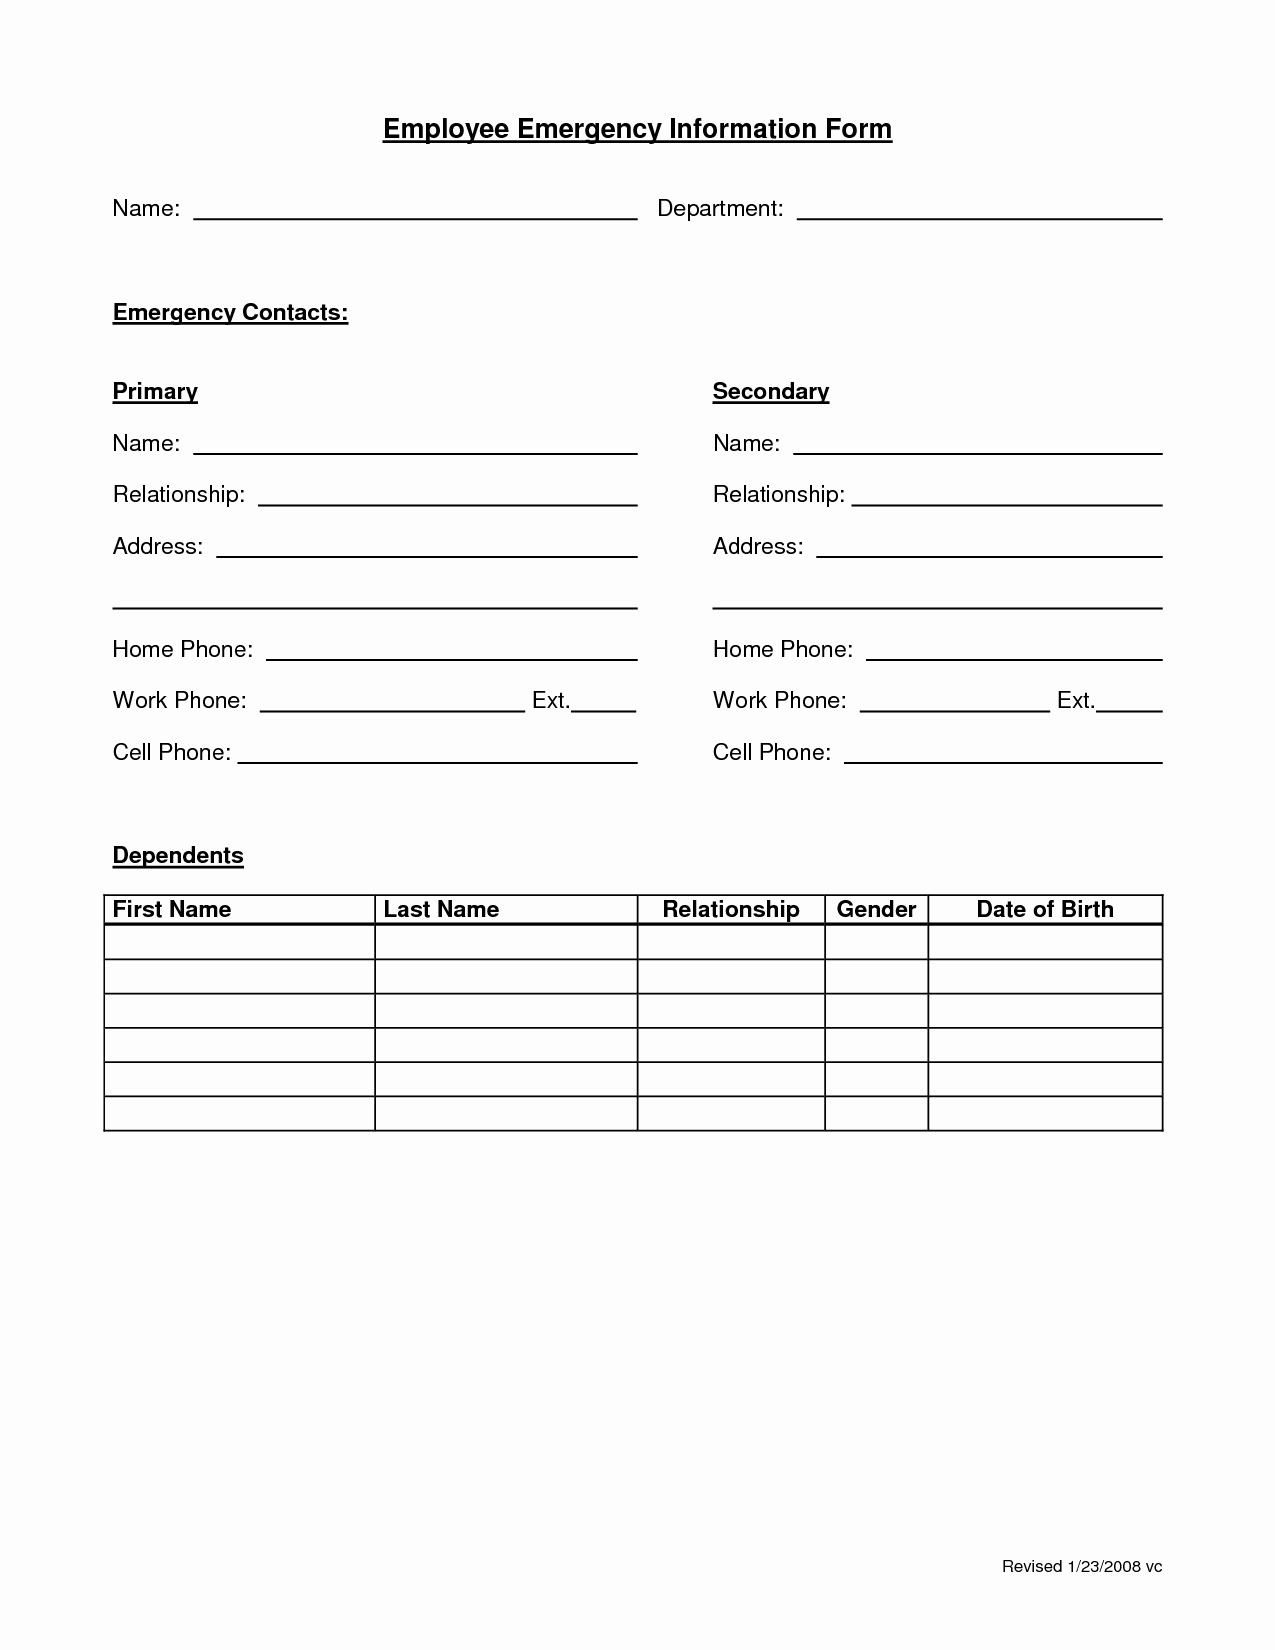 Emergency Contact form Template Word Elegant Employee Emergency form Employee forms